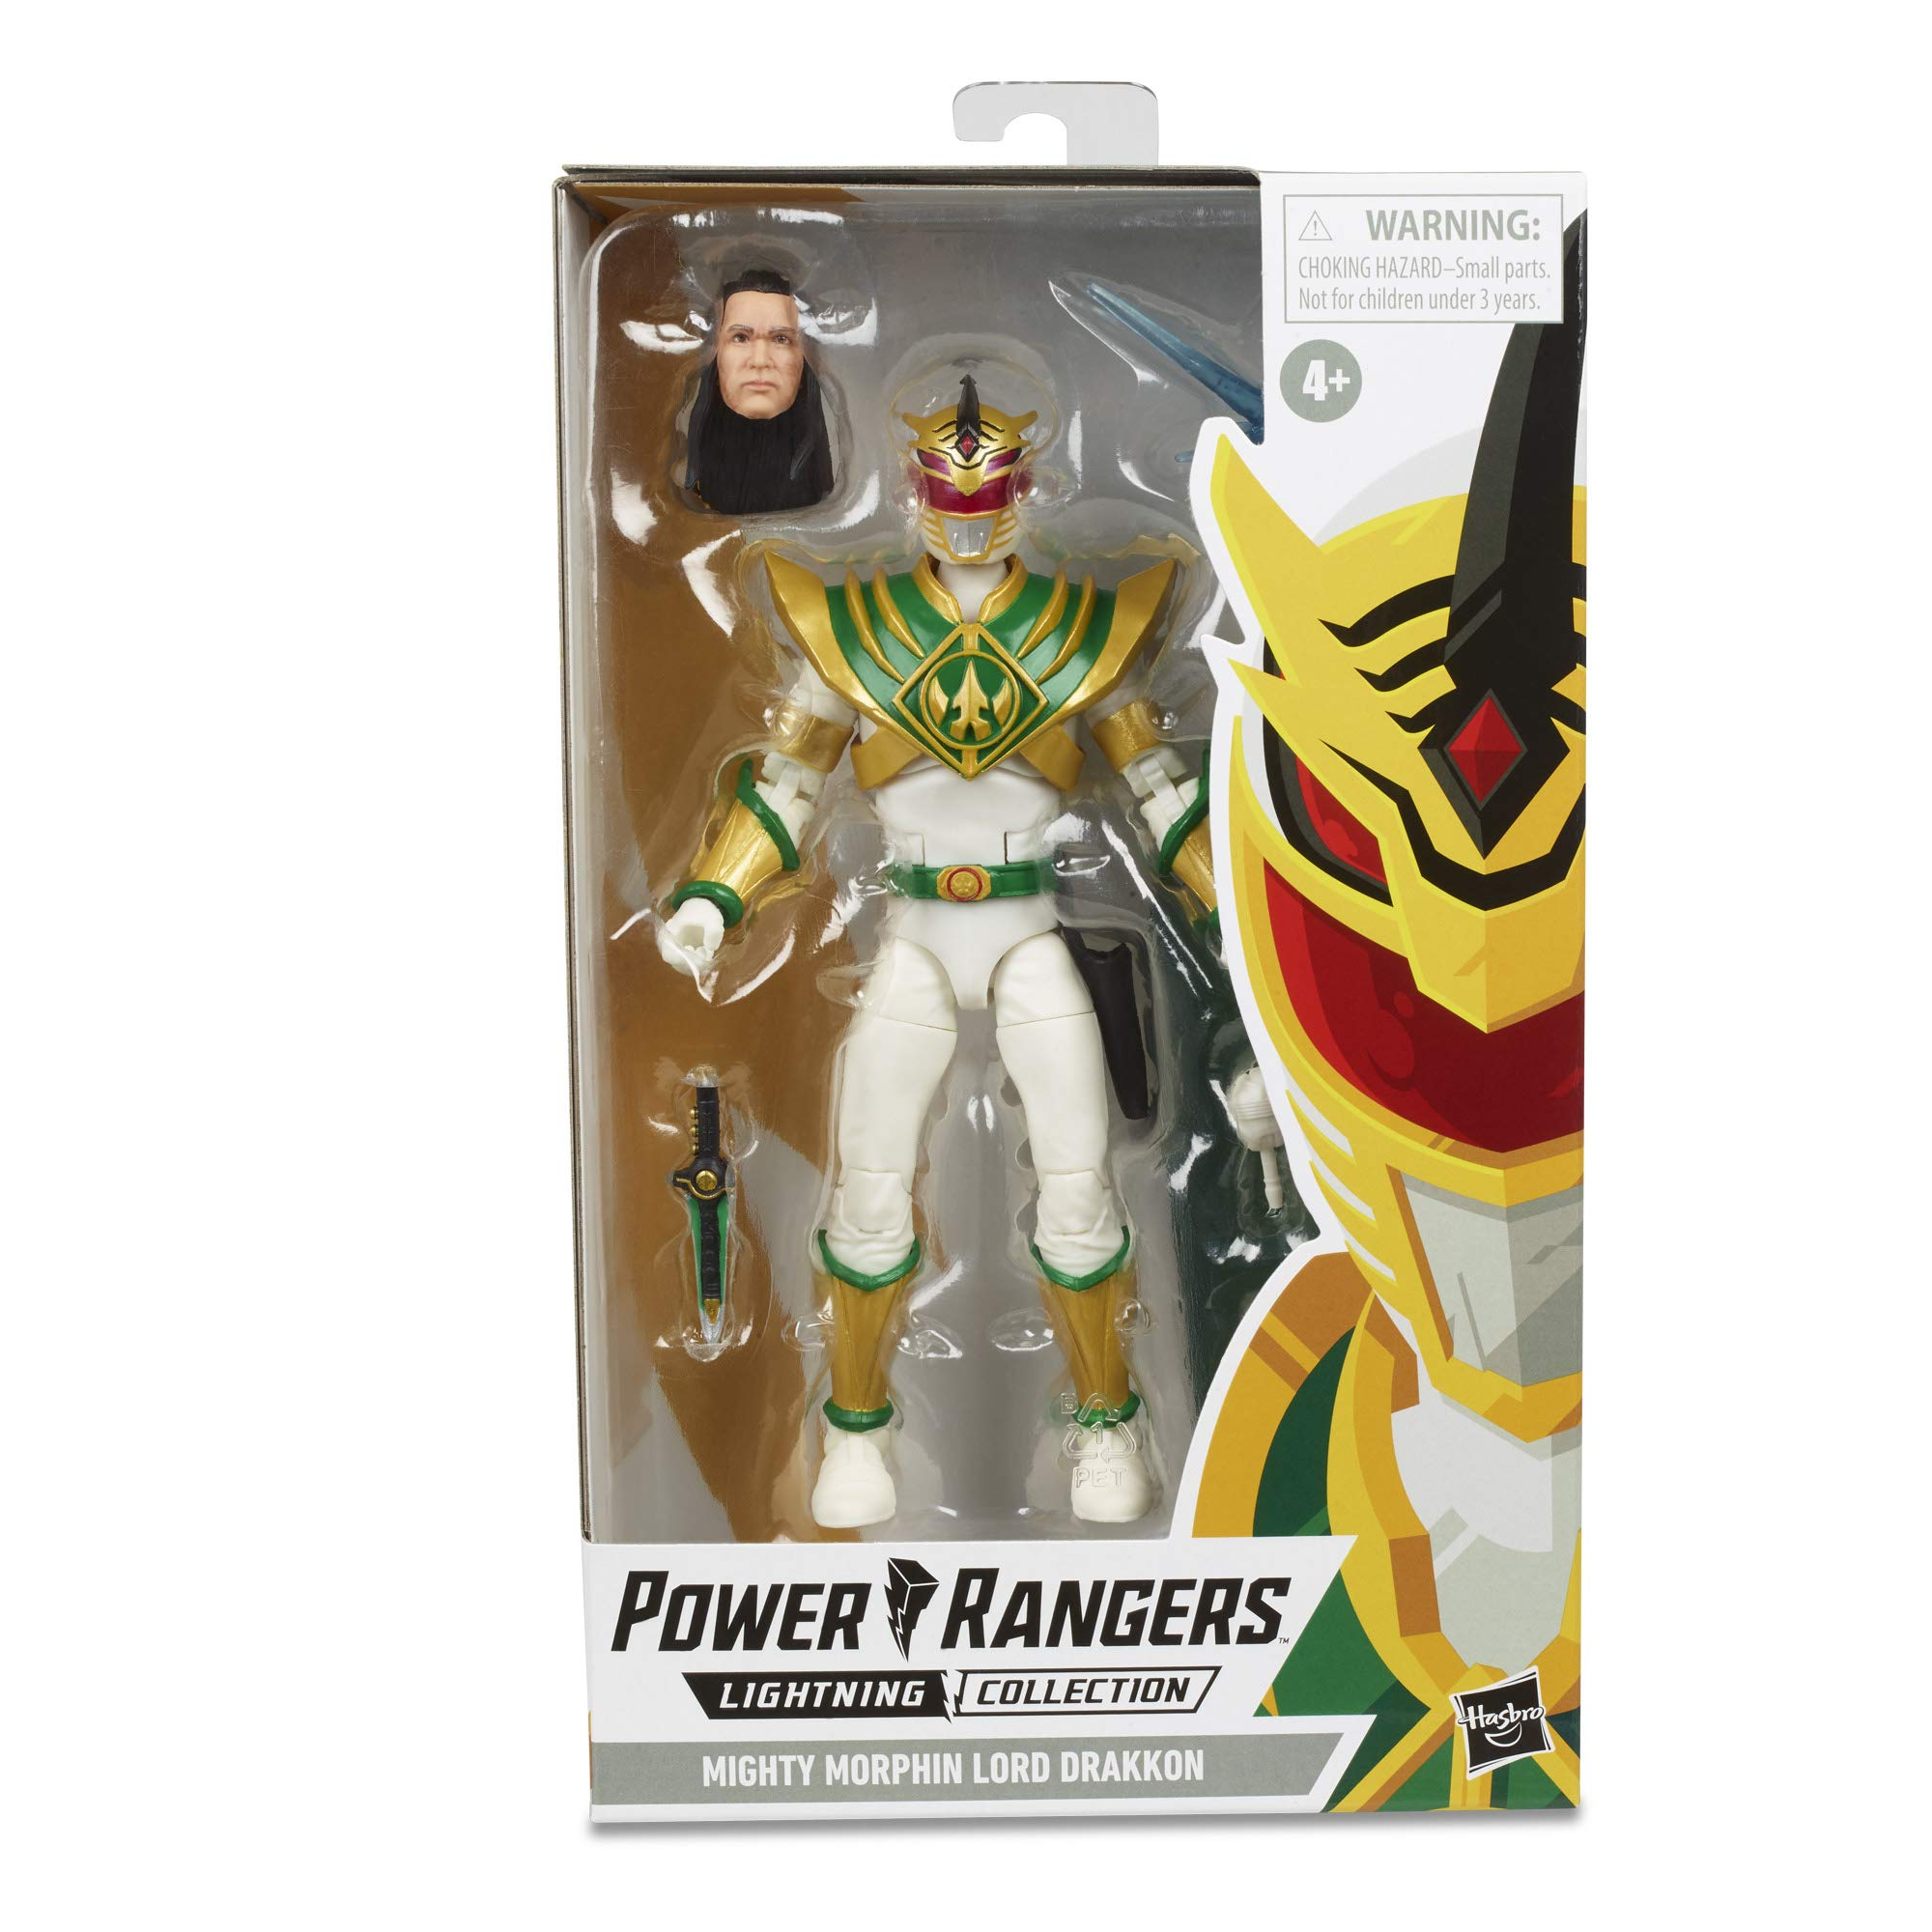 "Power Rangers Lightning Collection 6"" Mighty Morphin Lord Drakkon Collectible Action Figure Toy Inspired by Shattered Grid Comics"